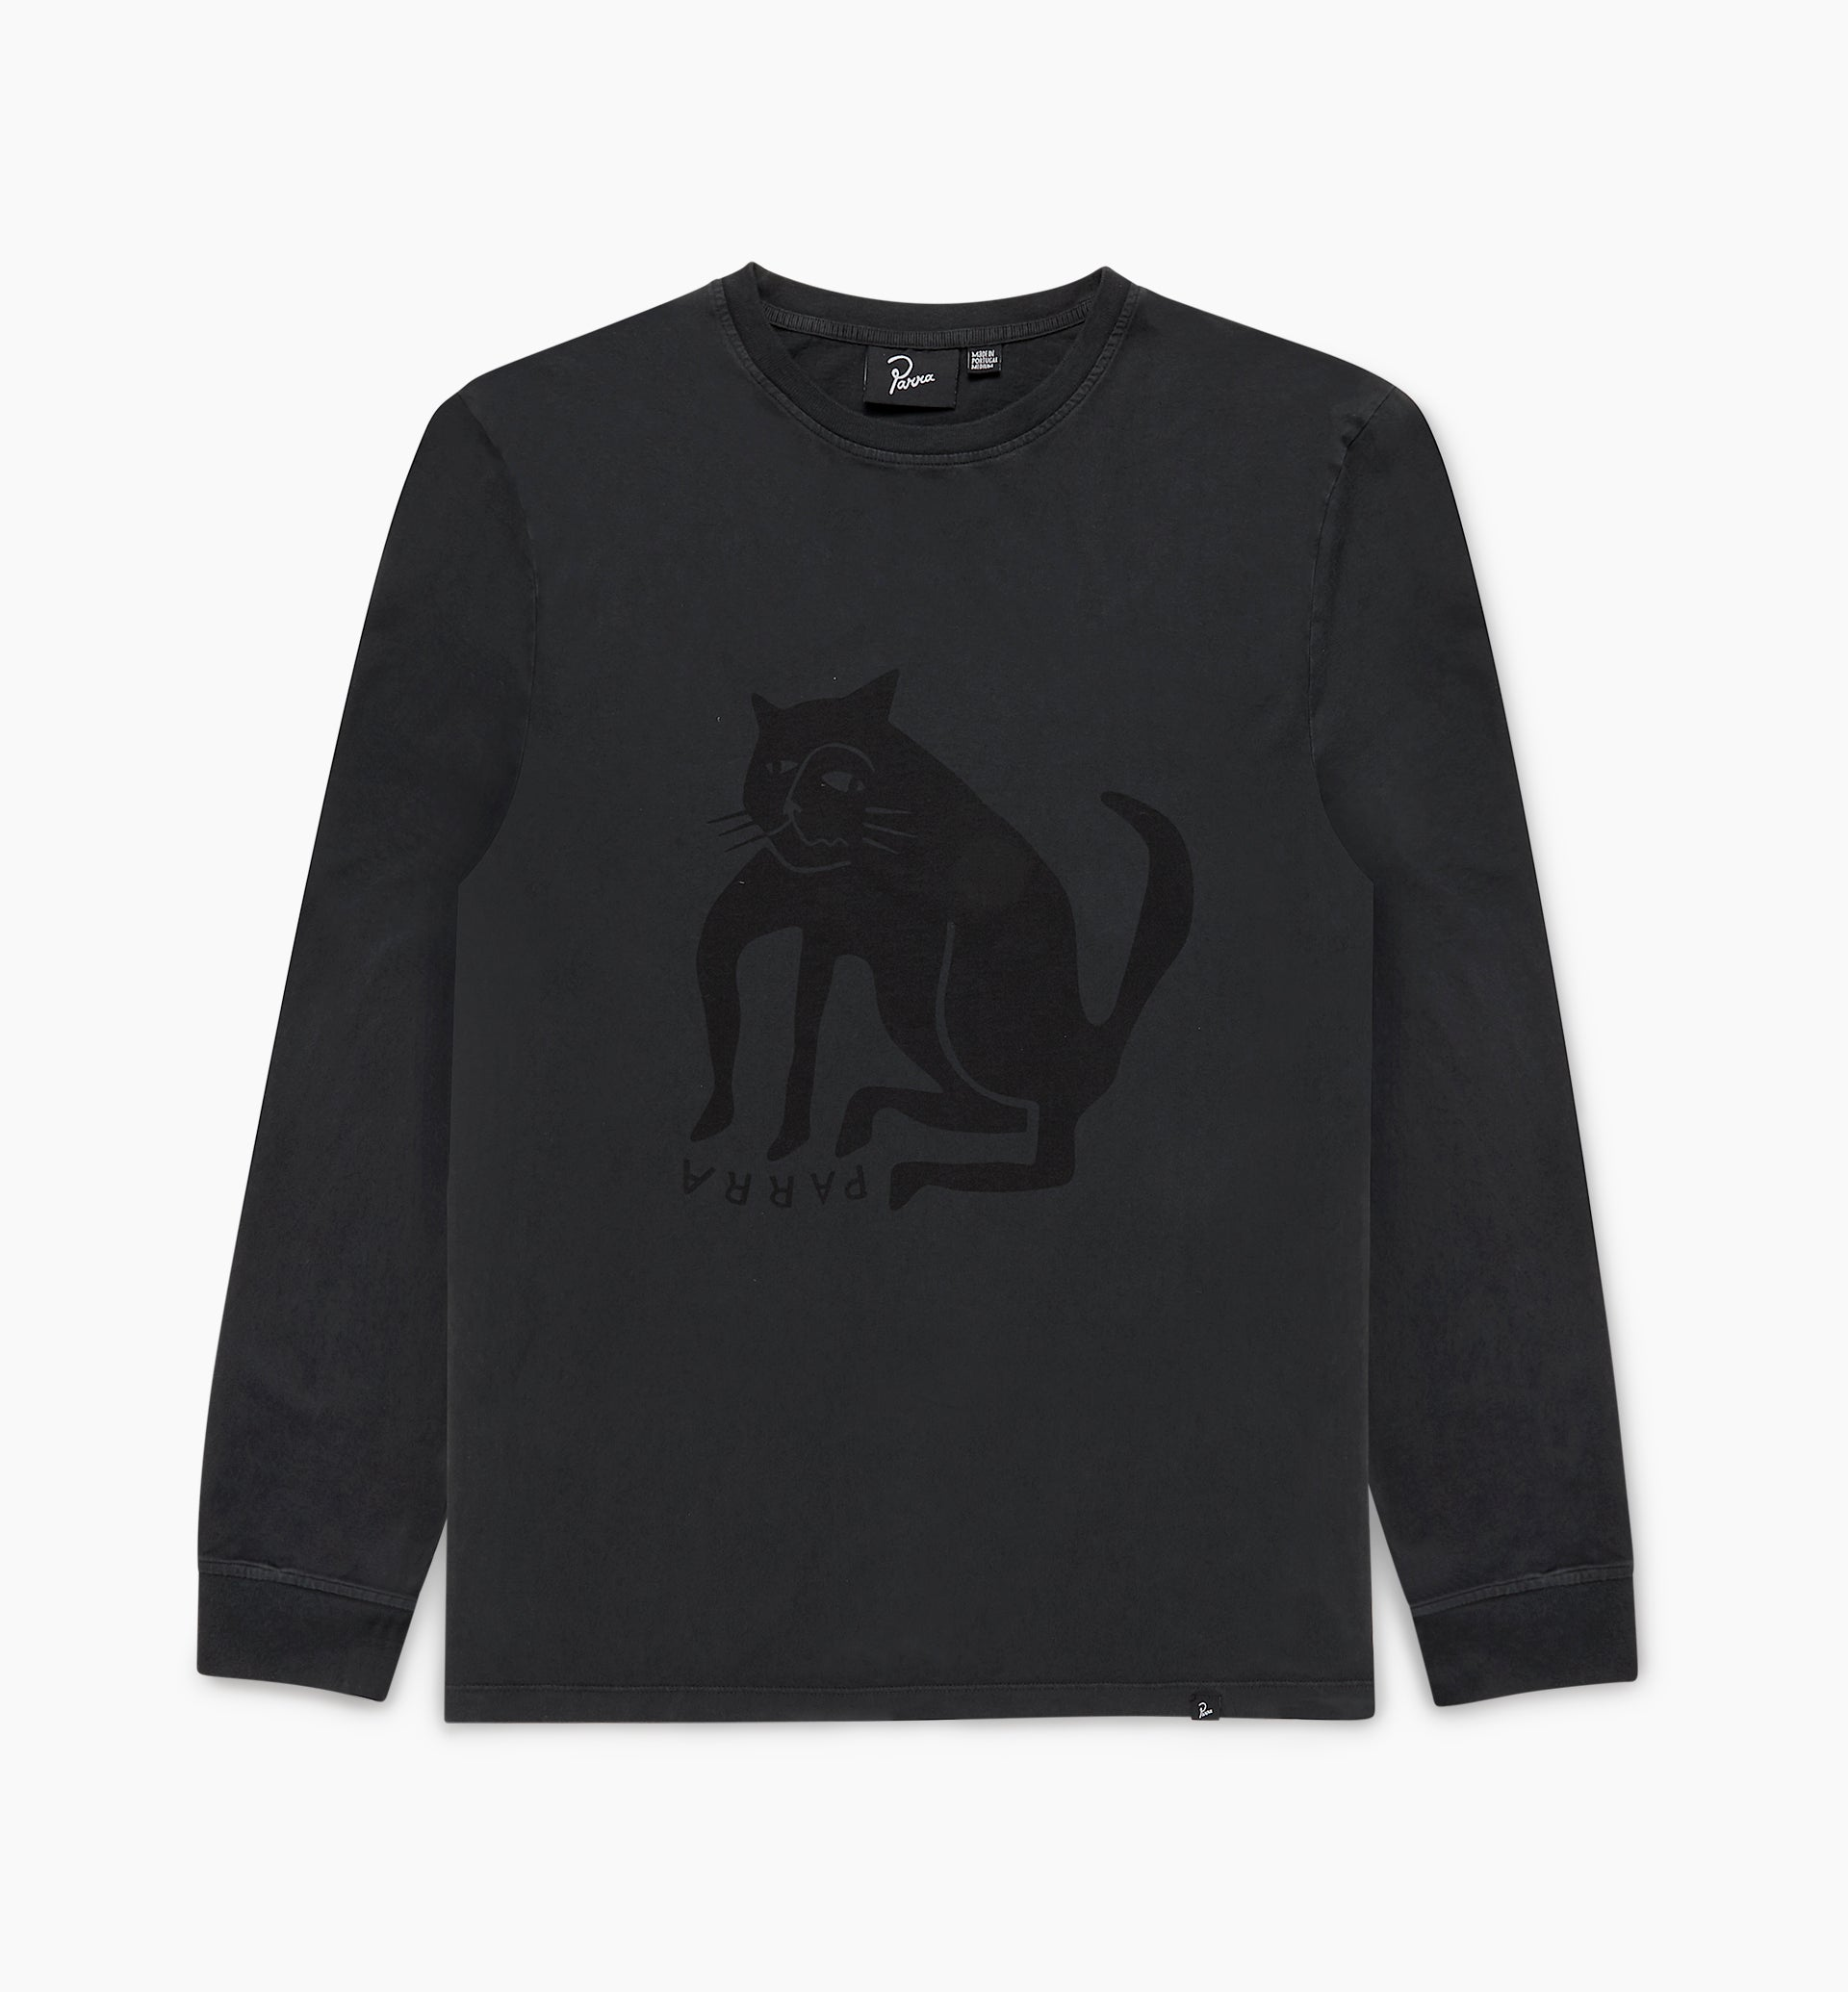 Parra - cat long sleeve t-shirt